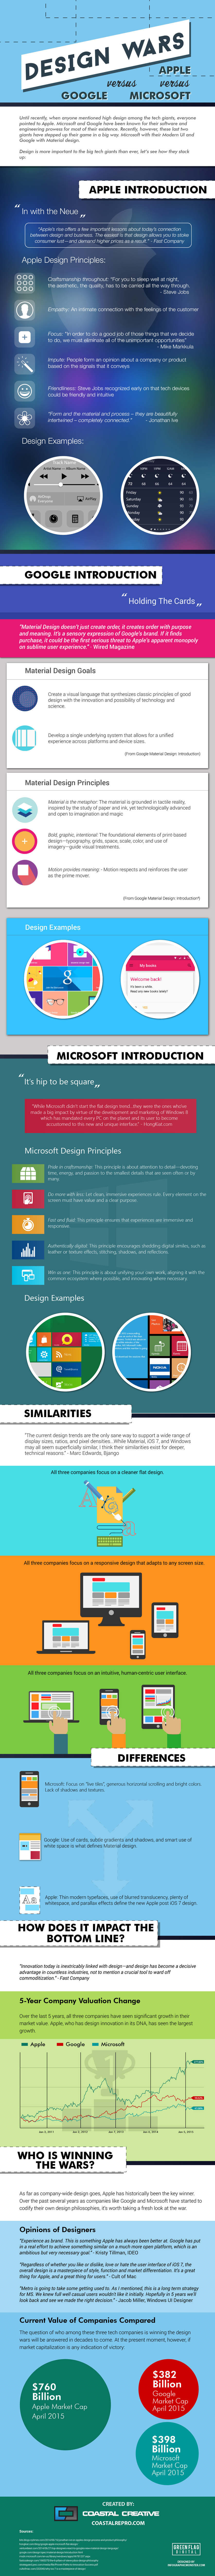 Design Wars Infographic Apple vs Google vs Microsoft